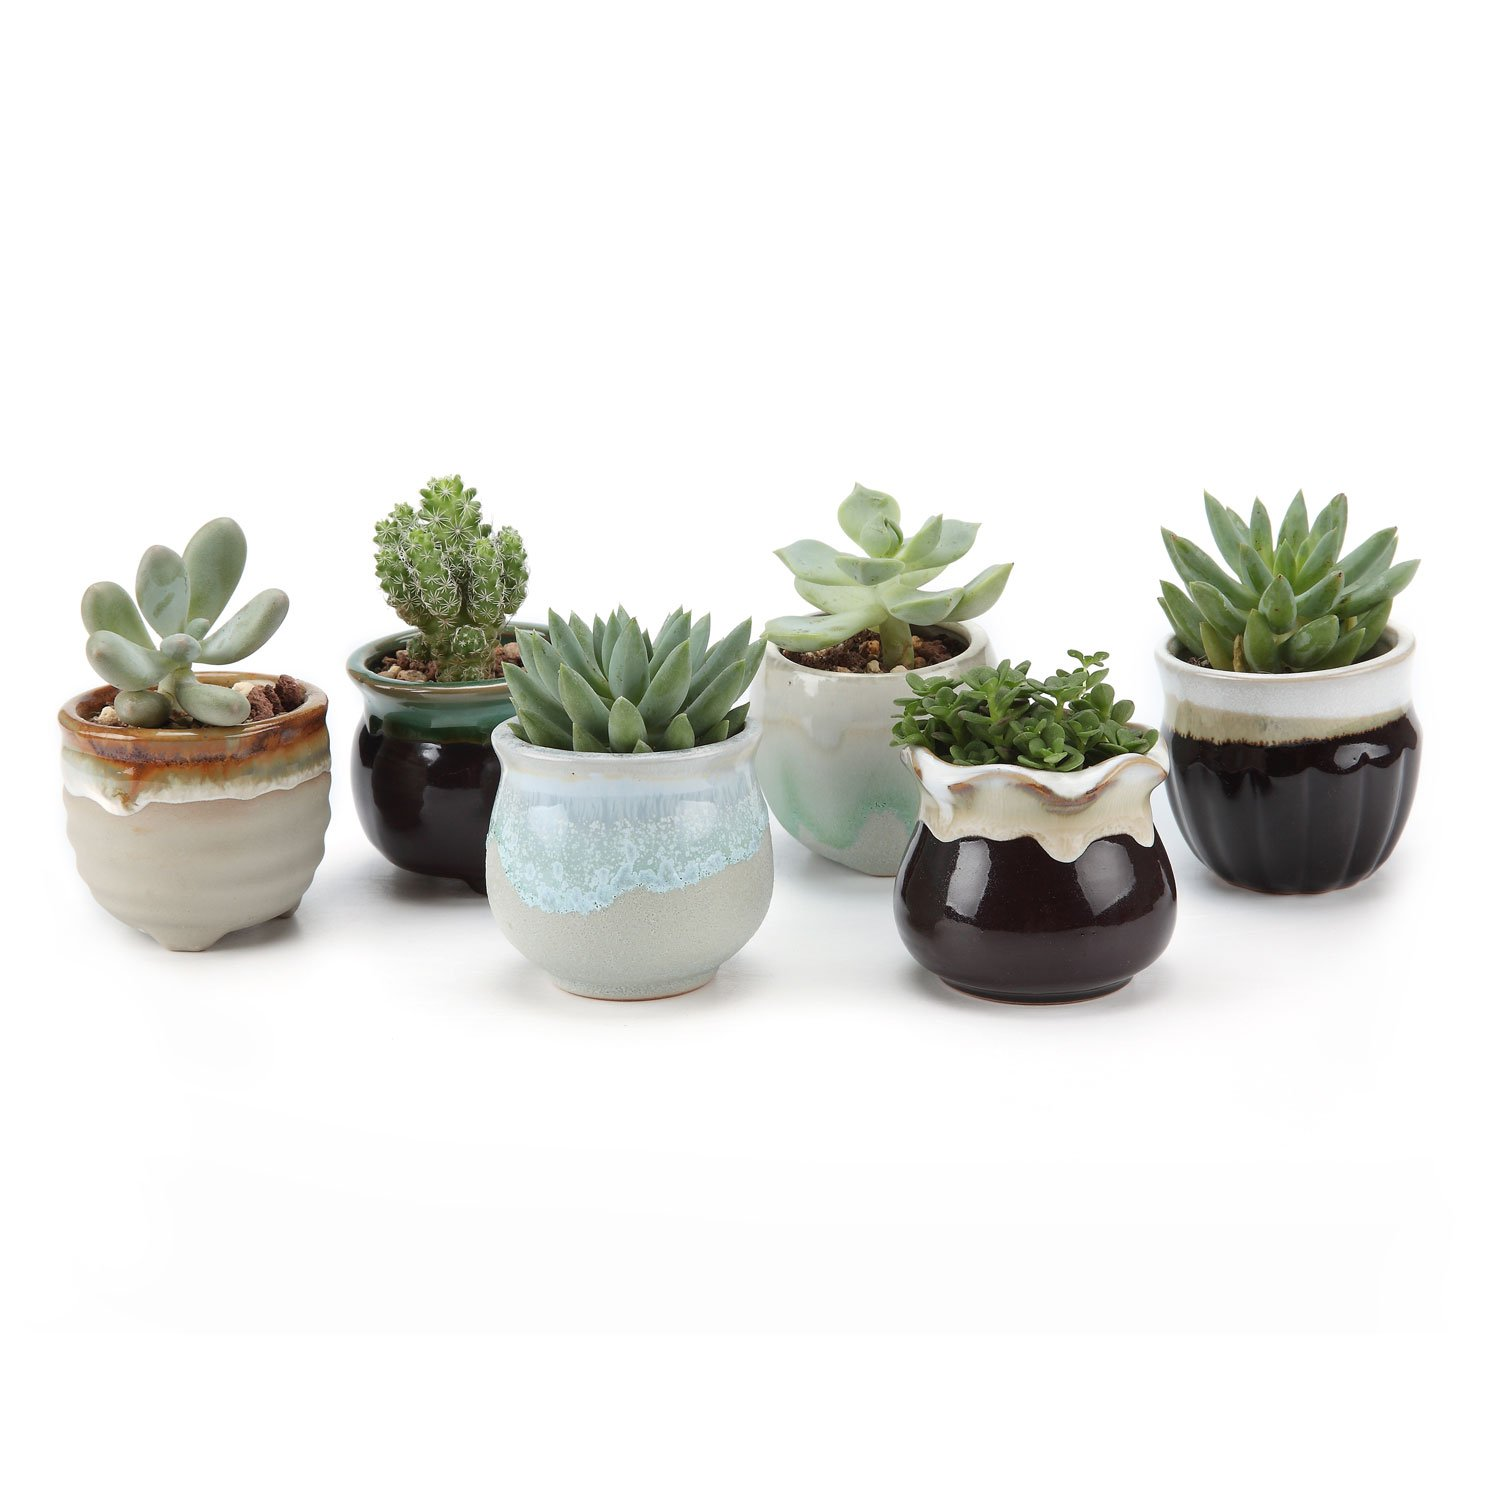 6 mini pots 2 5 inch ceramic plant cactus flower container. Black Bedroom Furniture Sets. Home Design Ideas